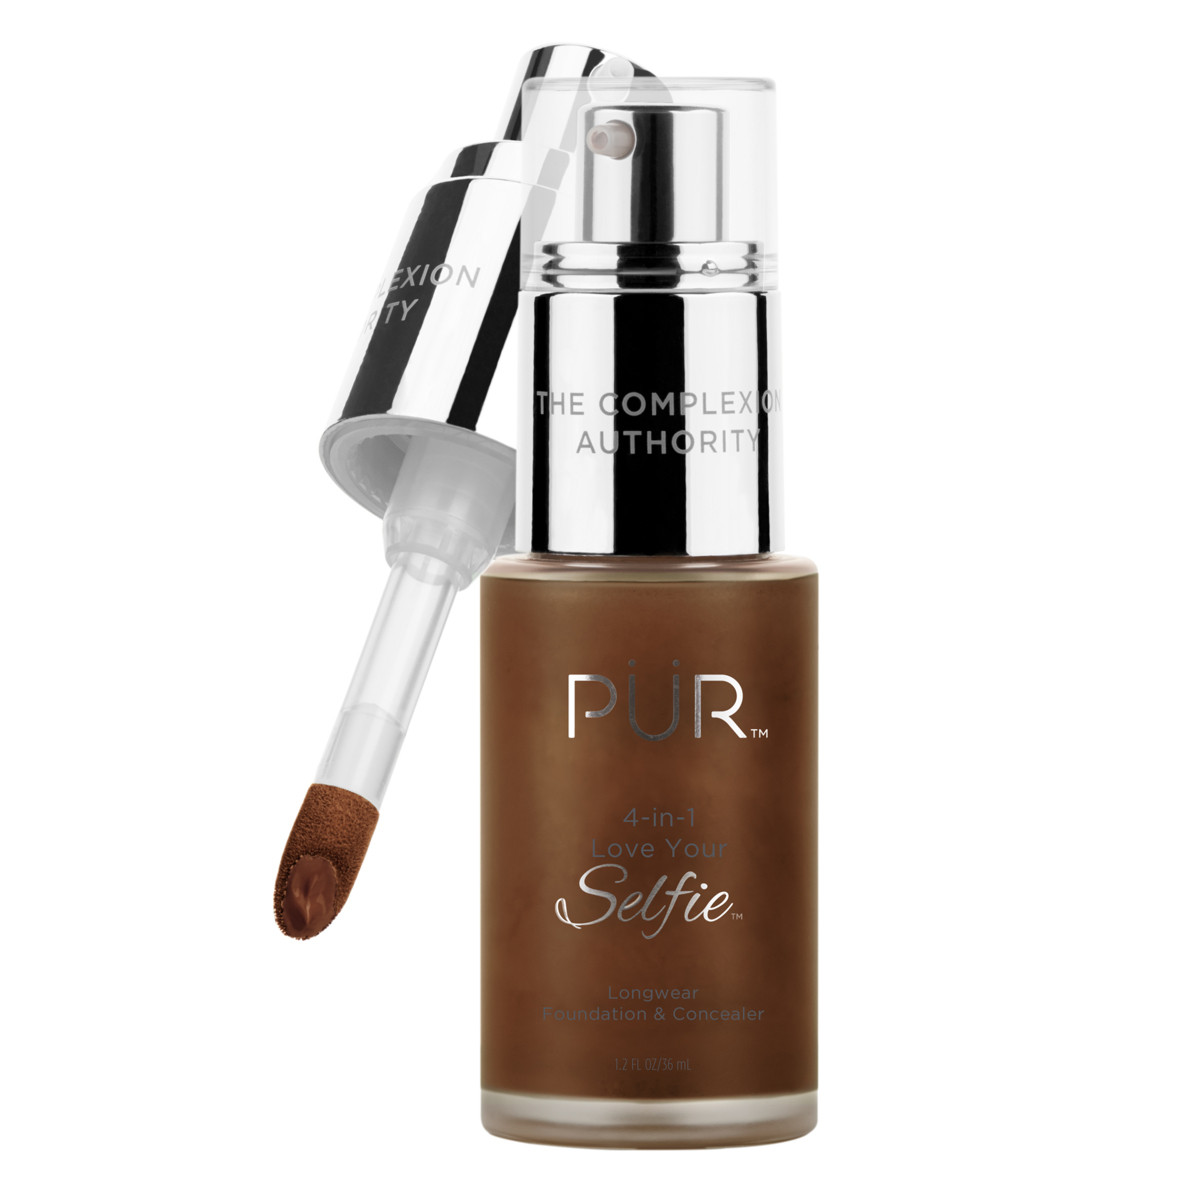 4-in-1 Love Your Selfie™ Longwear Foundation & Concealer in DPG5